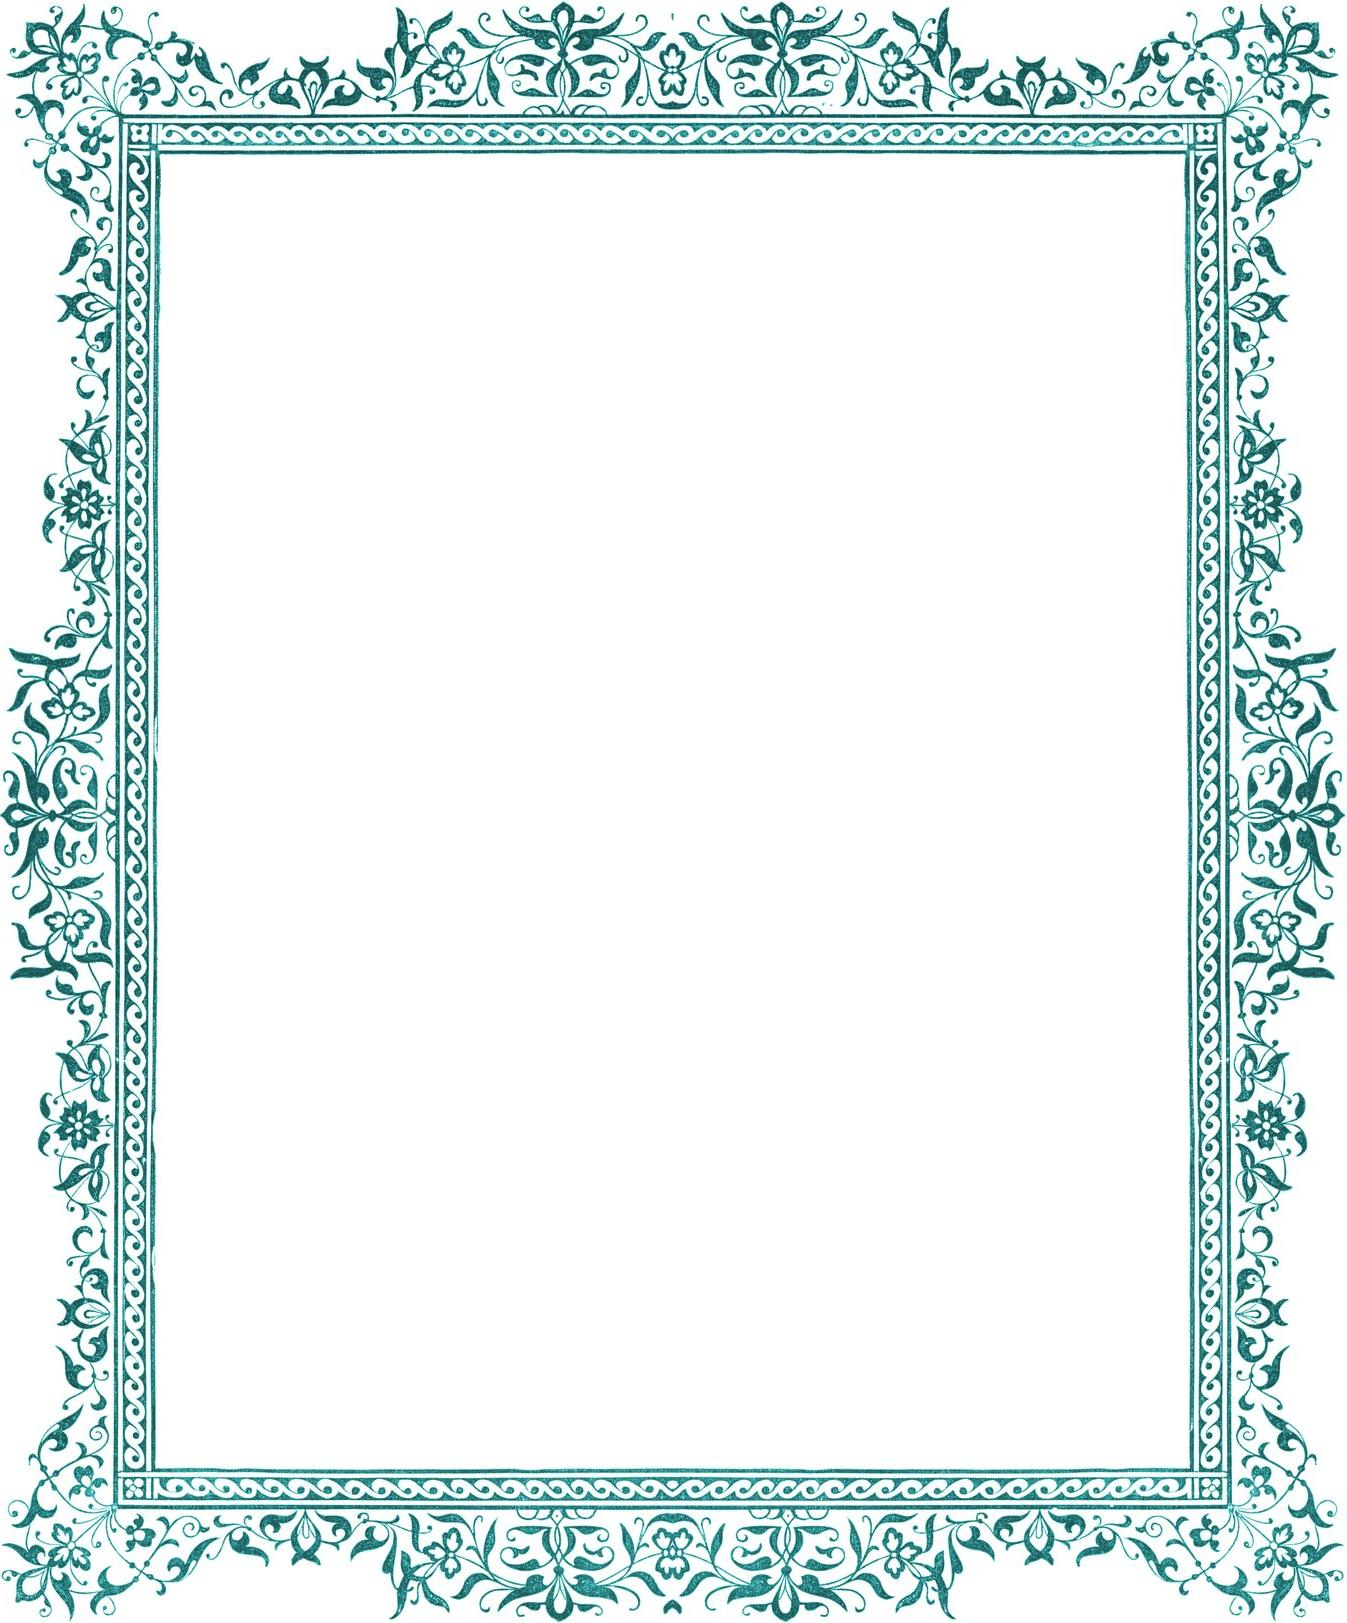 Pin kerawang kad kahwin border hawaii dermatology pictures images on - Jpg Wedding Border Clipart